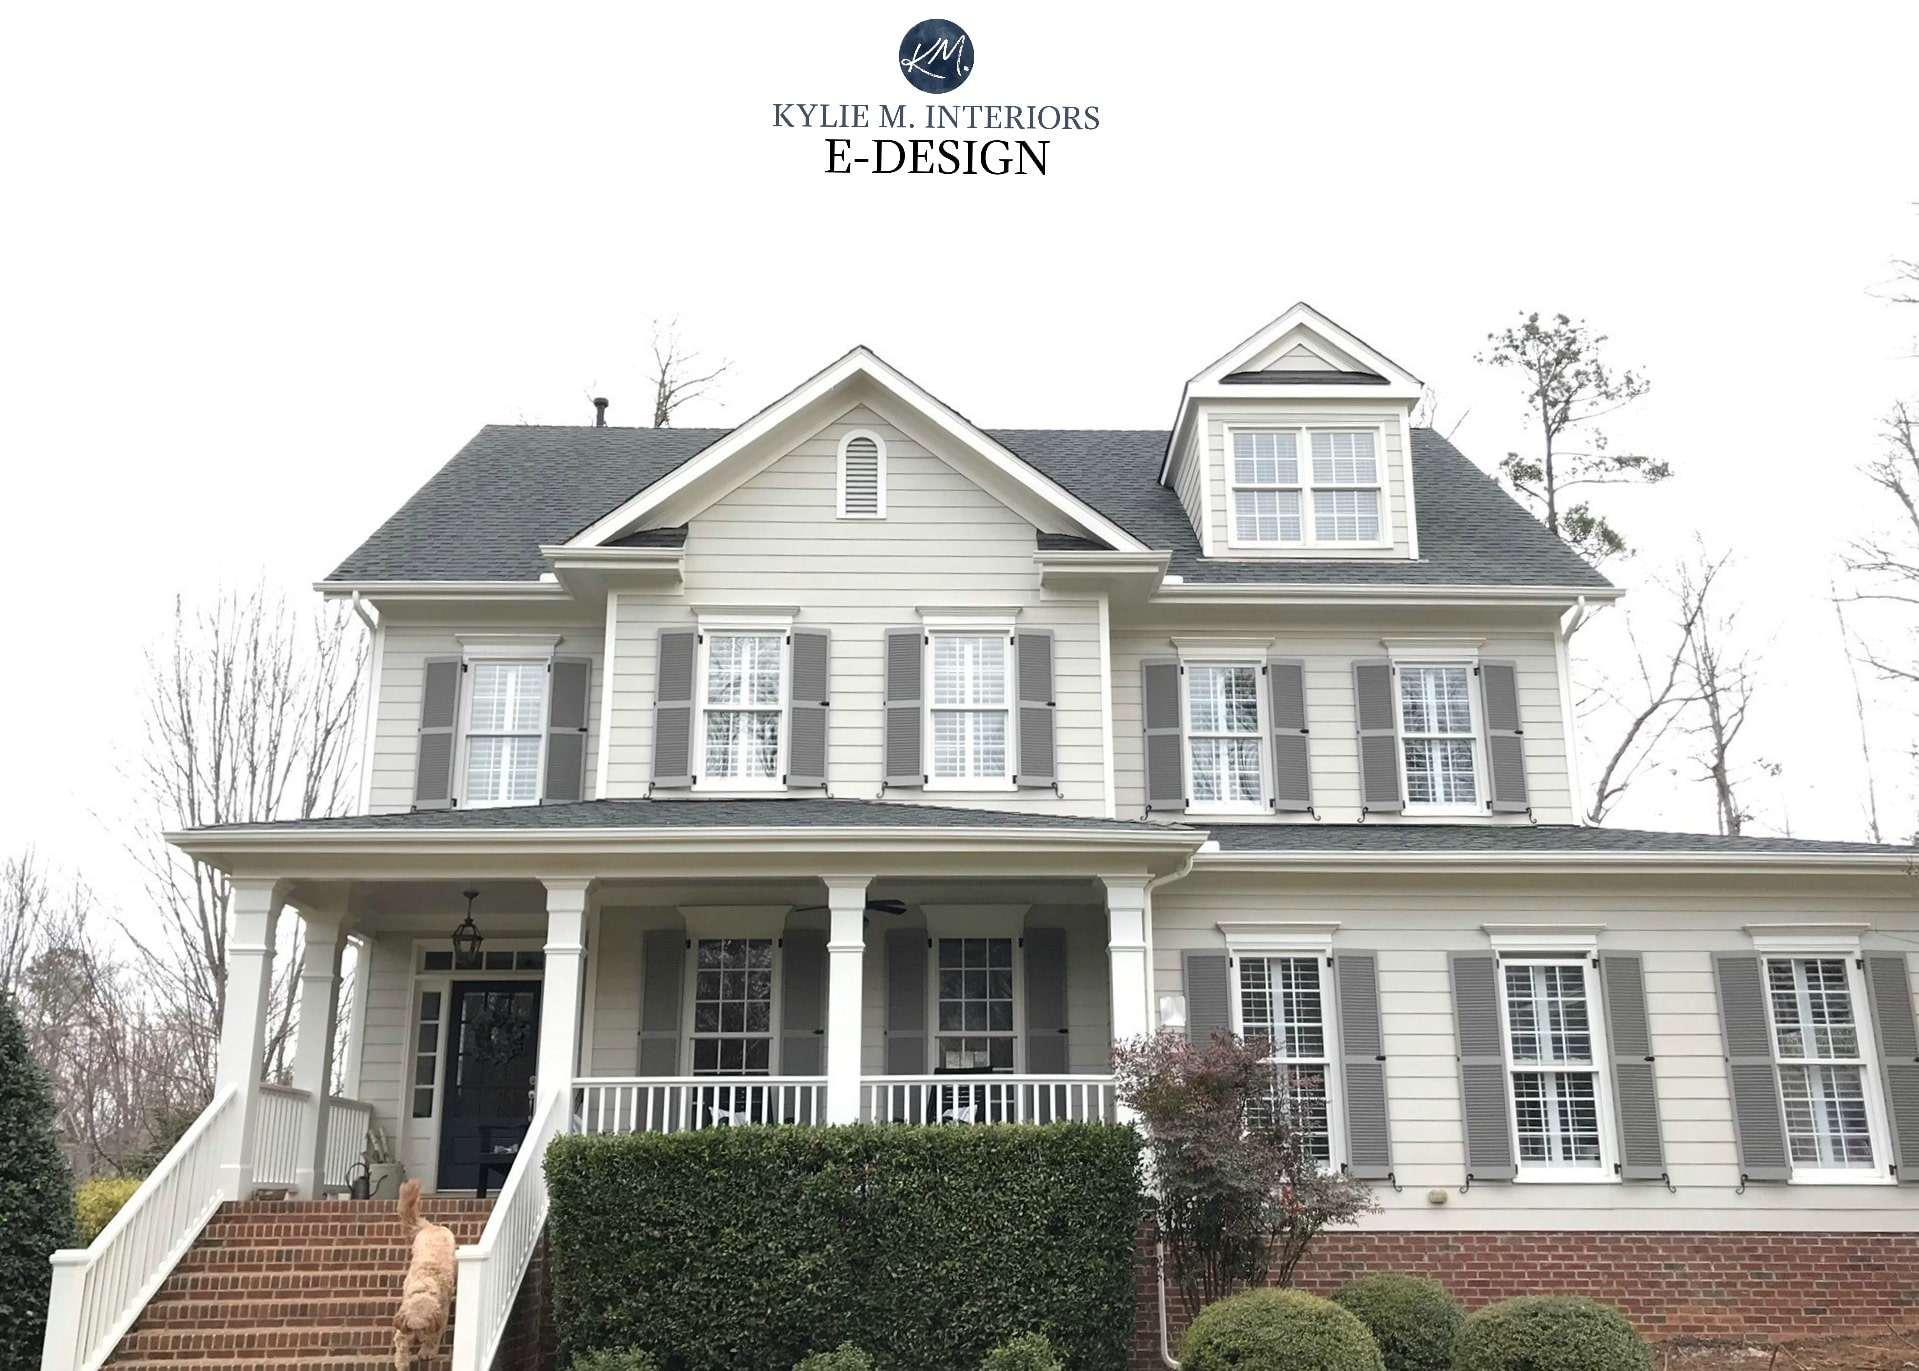 Exterior with red brick painted Benjamin Moore Revere Pewter and Creamy White trim, client choice. Graystone shutters. Kylie M Interiors Edesign, online paint color consultant